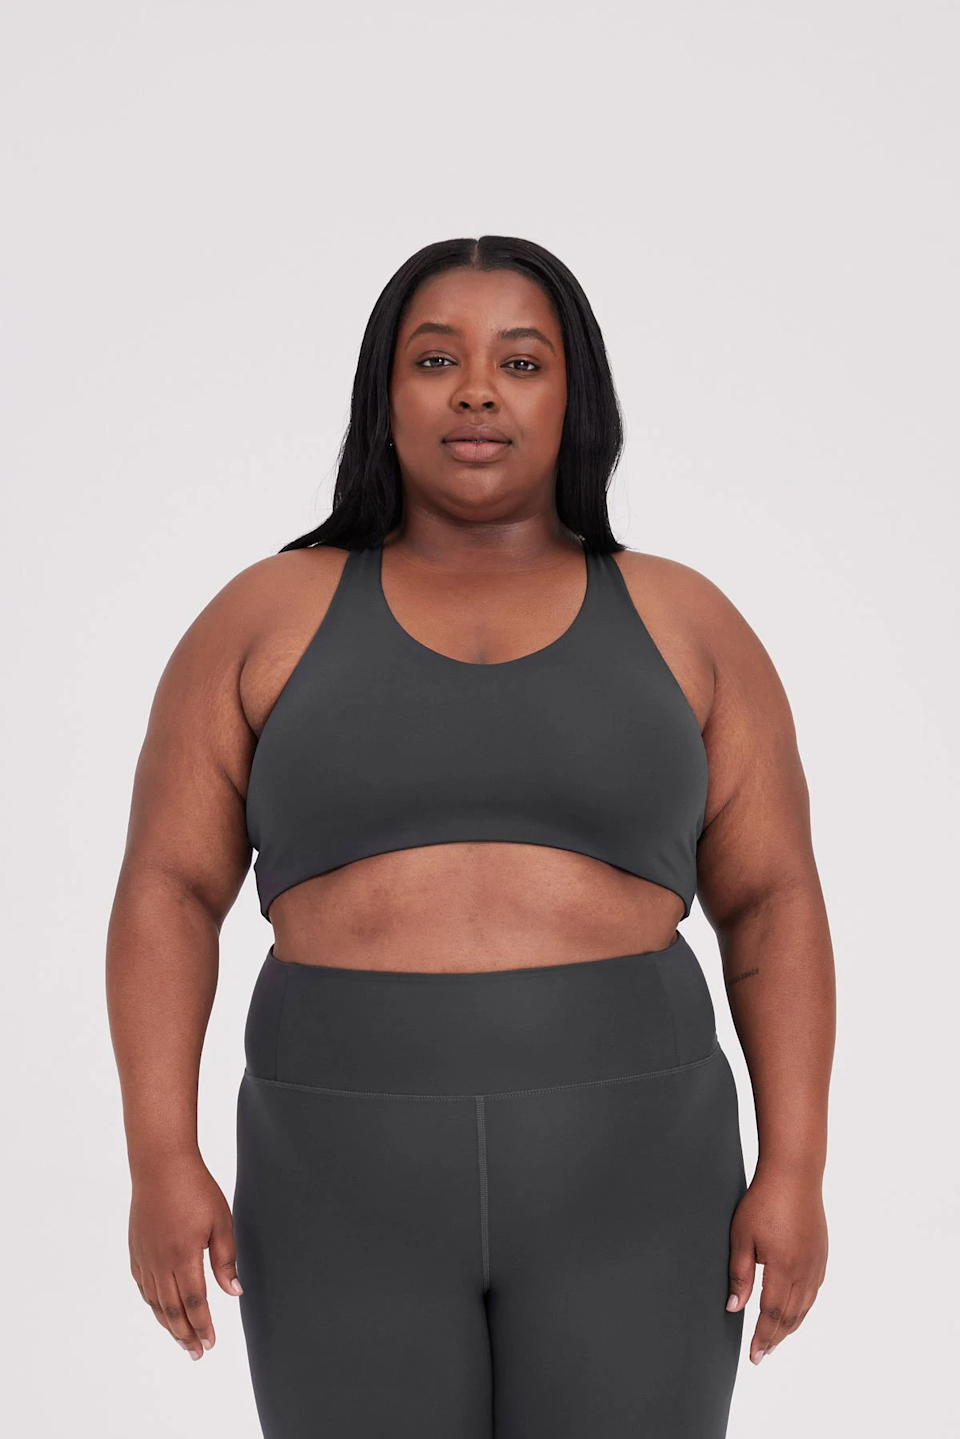 """<h3>Girlfriend Collective</h3><br>Under $40? Check. Sustainably-made? Check. Cute? Check, check, and check. Larger-chested folks may have avoided the V-neck silhouette, but no longer is that the case. Girlfriend Collective's bras give you necessary support and are available in sizes XXS to 6XL.<br><br><strong>Girlfriend Collective</strong> FLOAT Lola Bra, $, available at <a href=""""https://go.skimresources.com/?id=30283X879131&url=https%3A%2F%2Fwww.girlfriend.com%2Fproducts%2Fshadow-float-lola-bra"""" rel=""""nofollow noopener"""" target=""""_blank"""" data-ylk=""""slk:Girlfriend Collective"""" class=""""link rapid-noclick-resp"""">Girlfriend Collective</a>"""